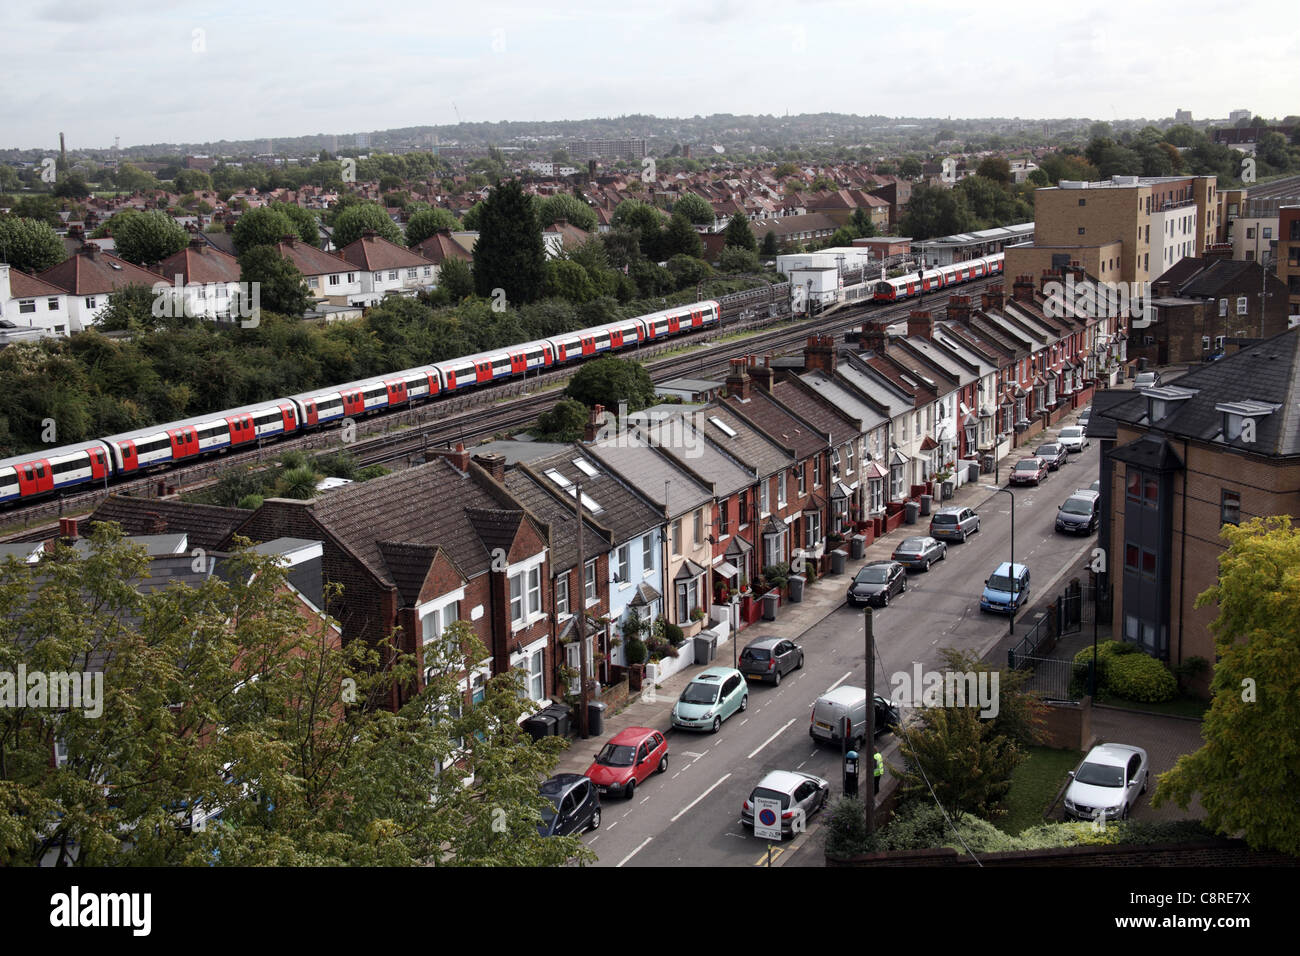 Terraced Housing in Willesden, North London - Stock Image